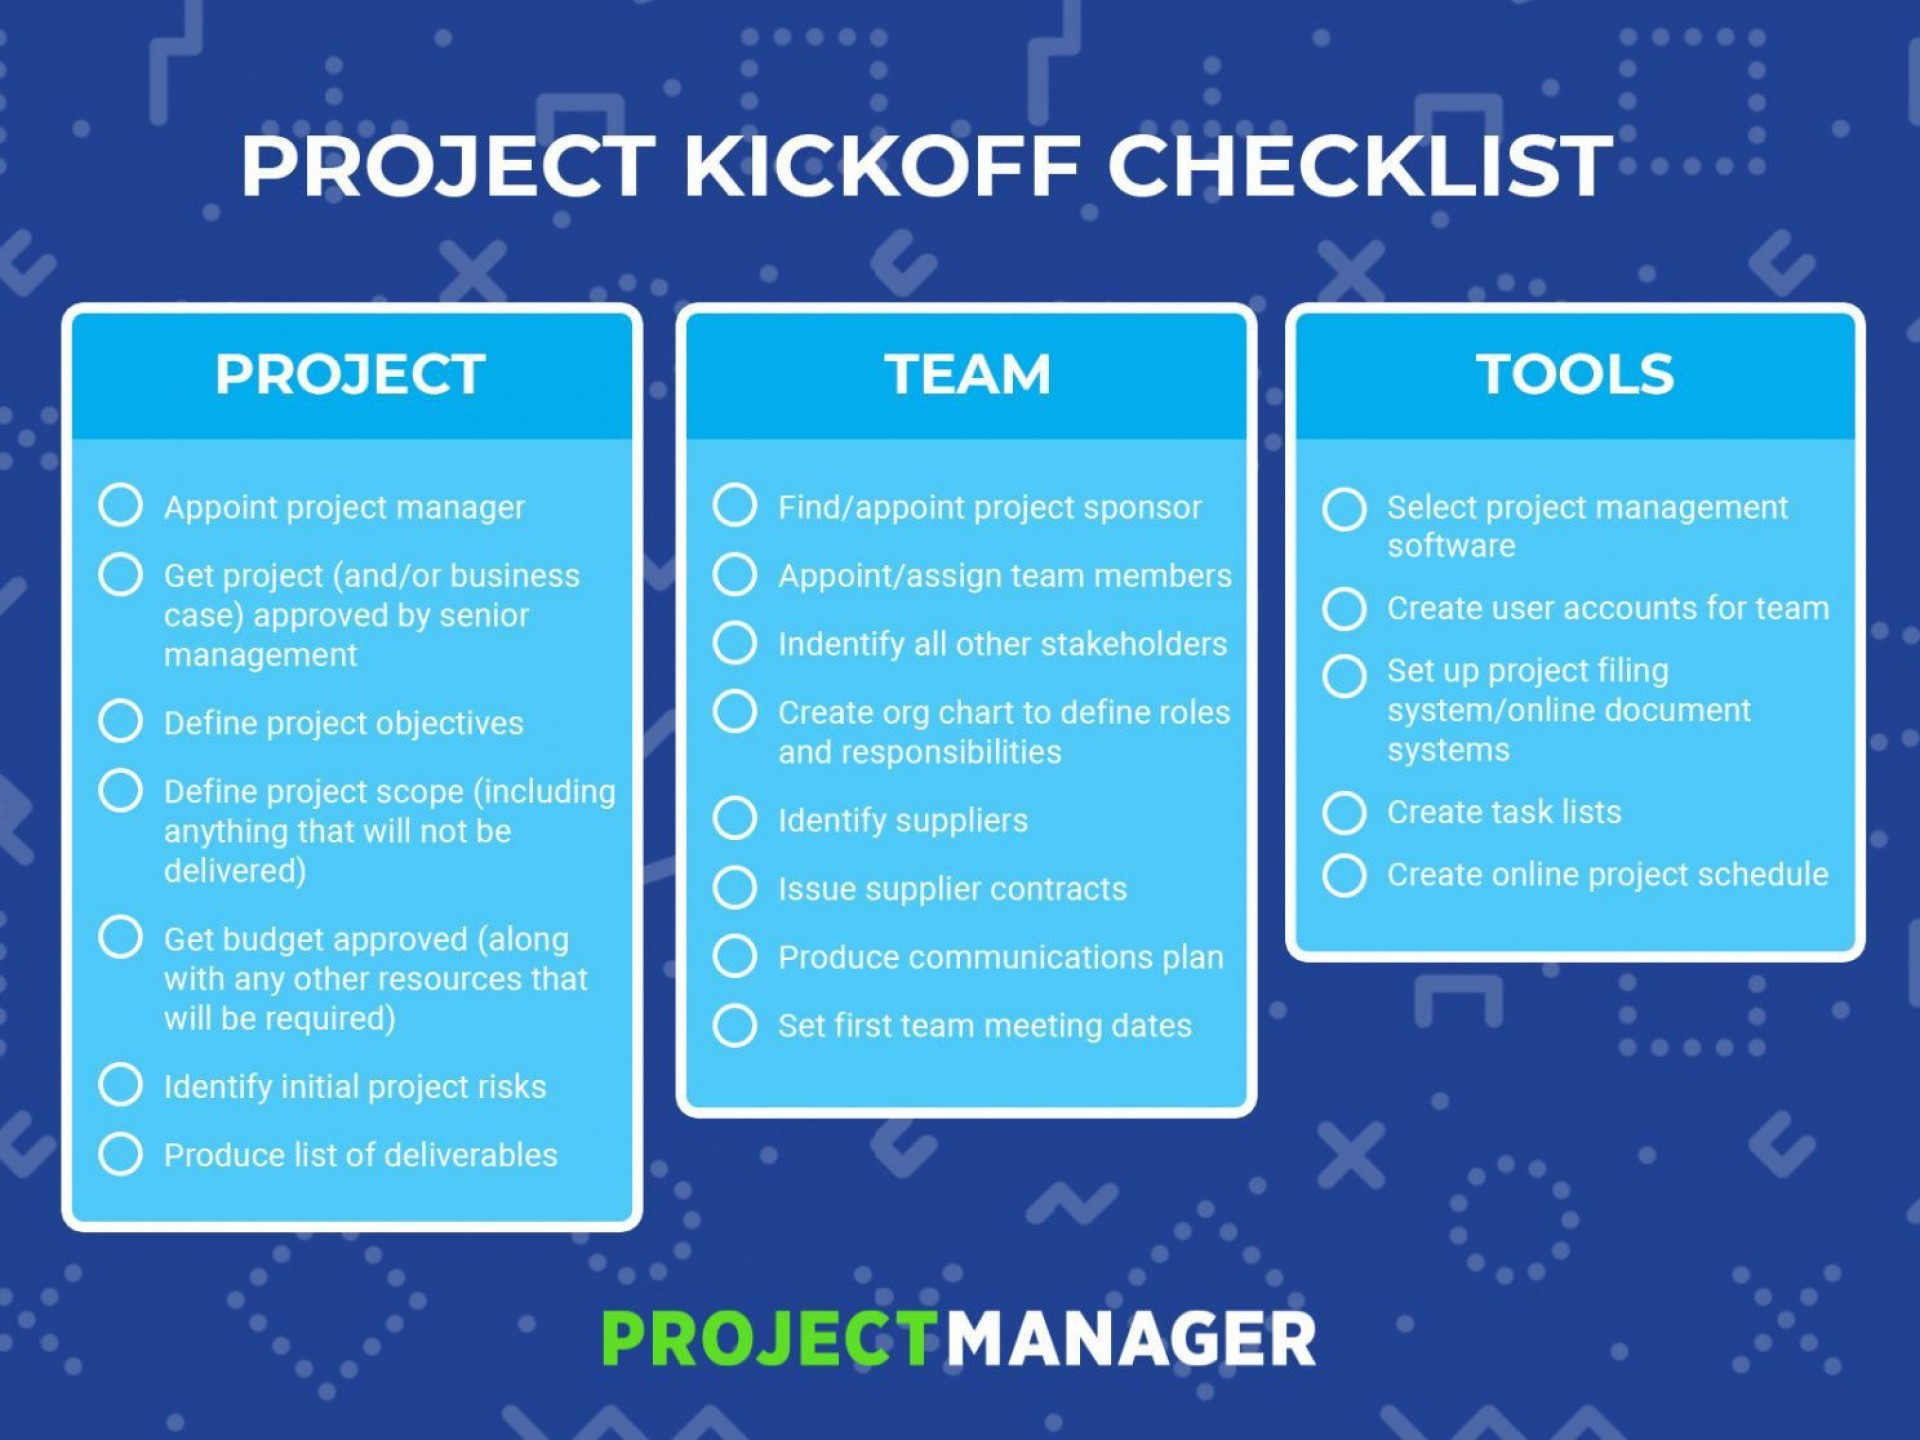 002 Awesome Project Kickoff Meeting Email Template Inspiration  Kick Off1920